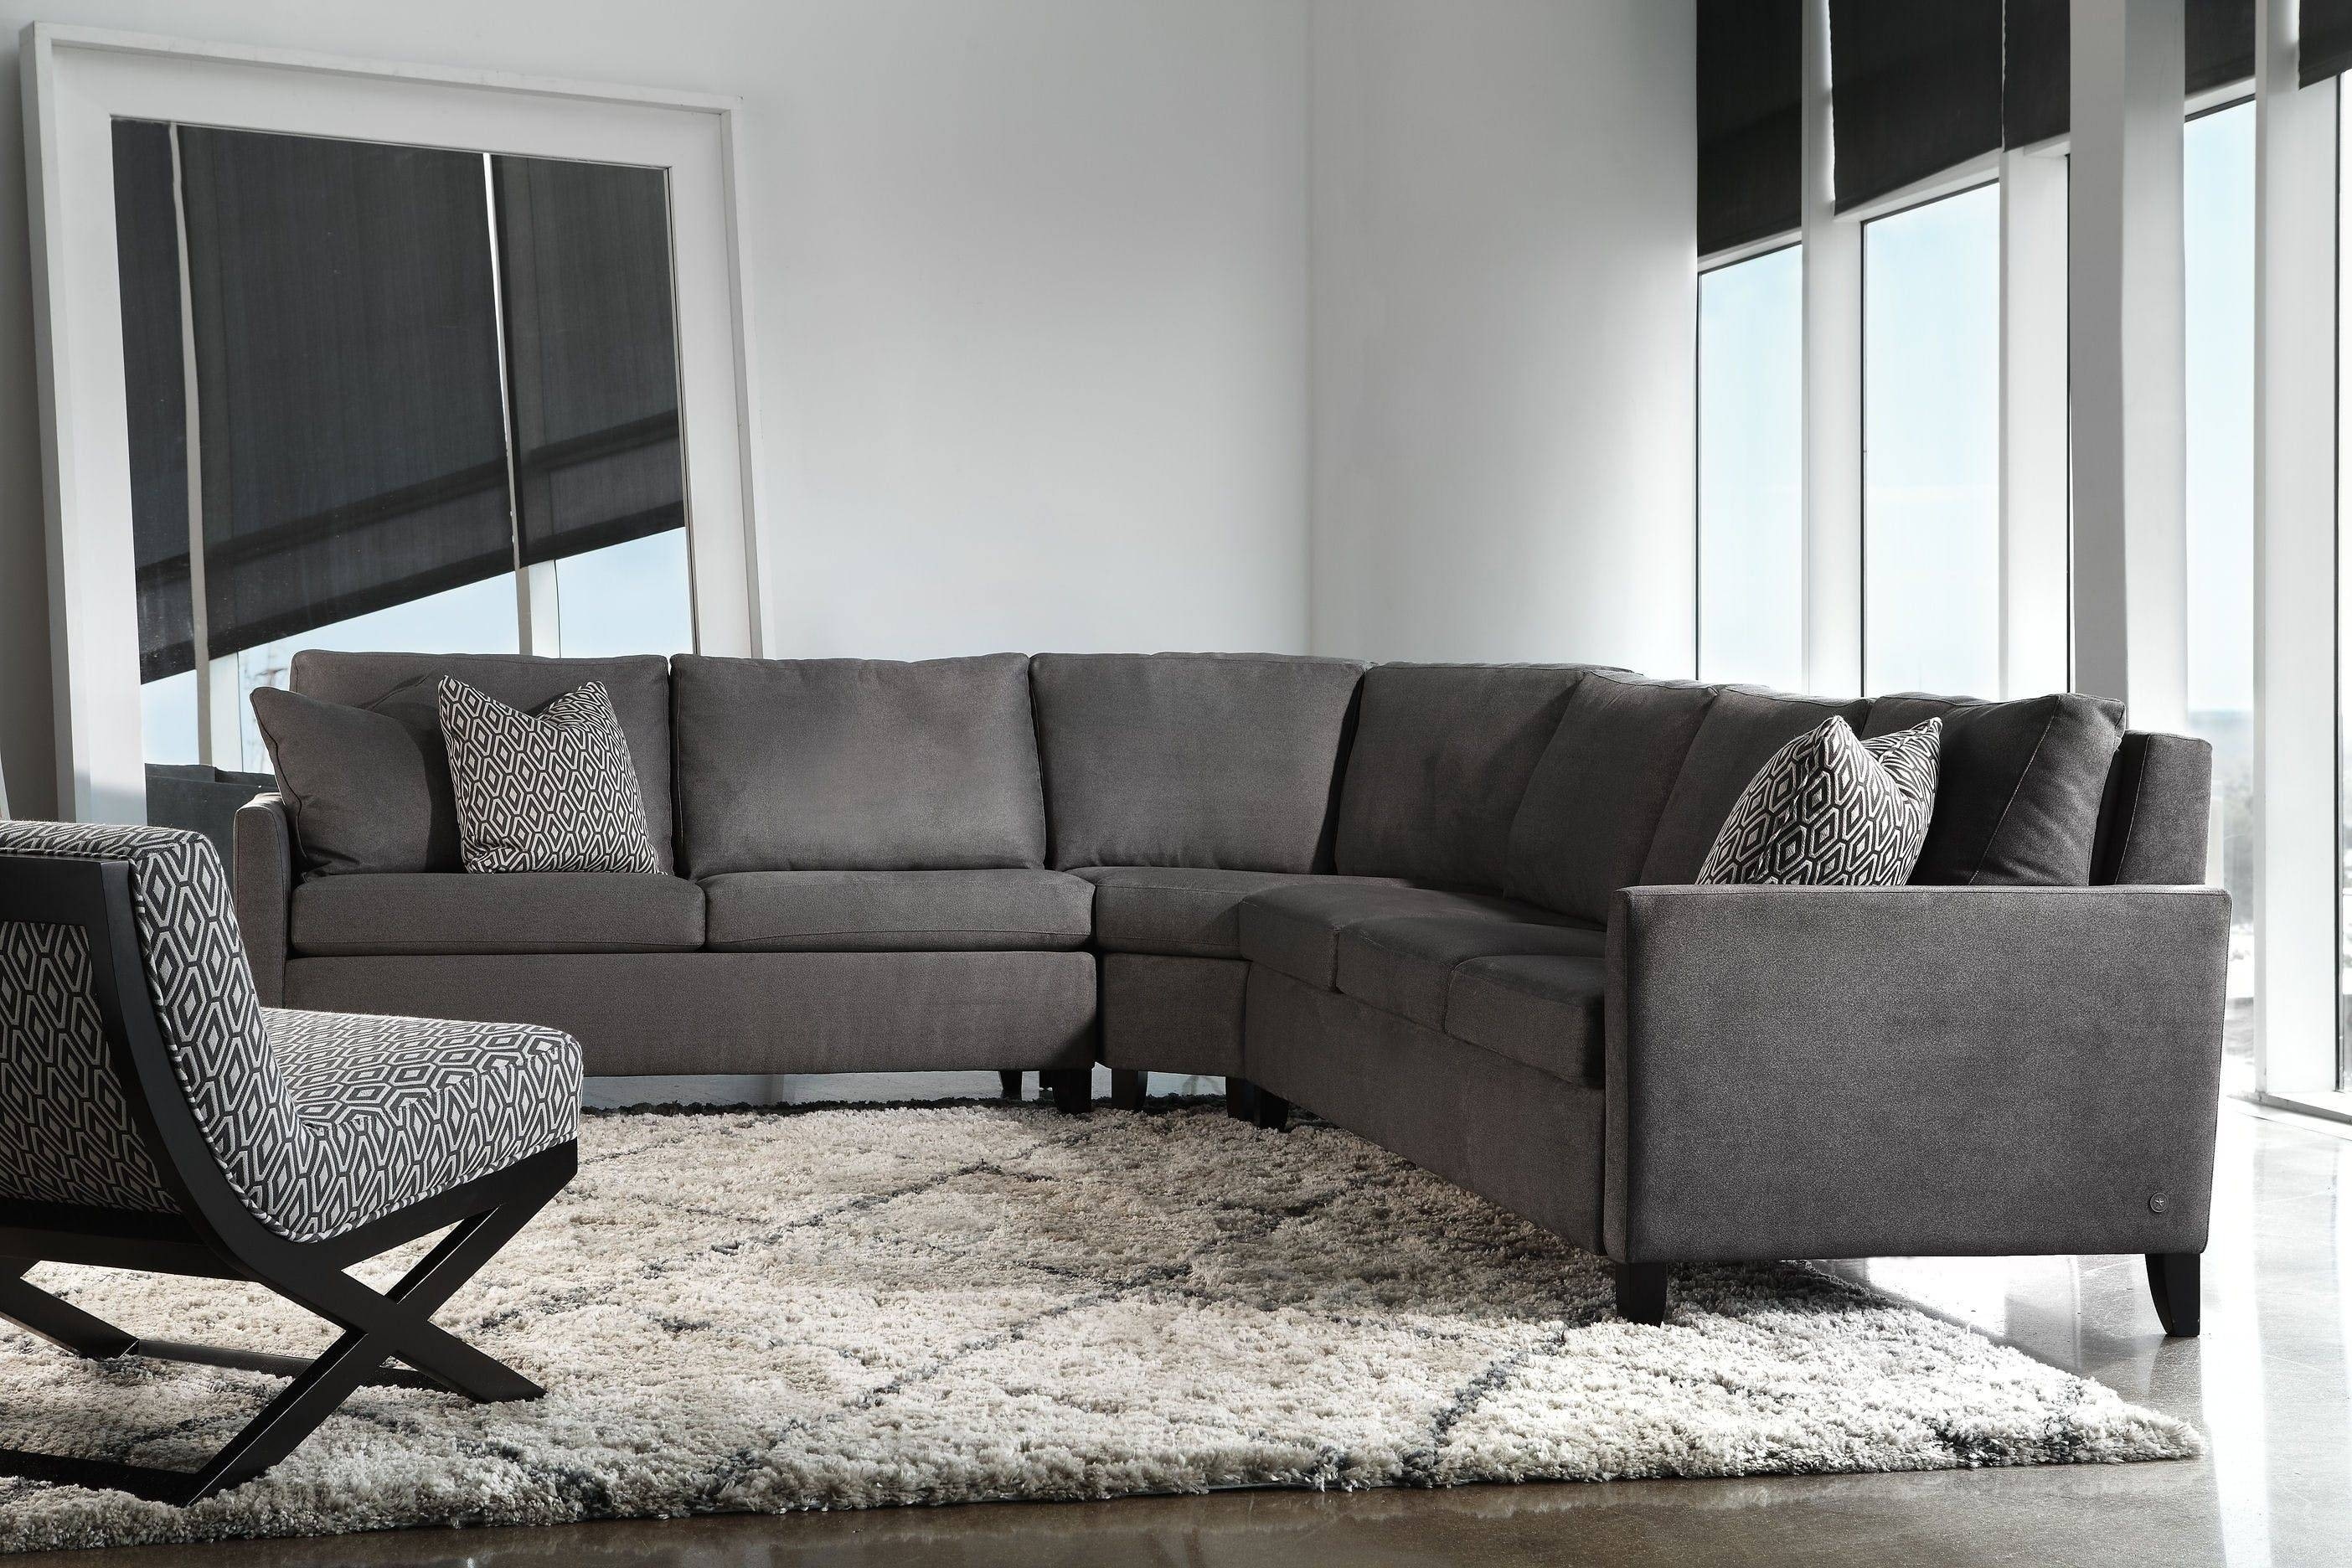 Furniture: Mesmerizing Costco Sectionals Sofa For Cozy Living Room throughout Berkline Sectional Sofa (Image 18 of 30)